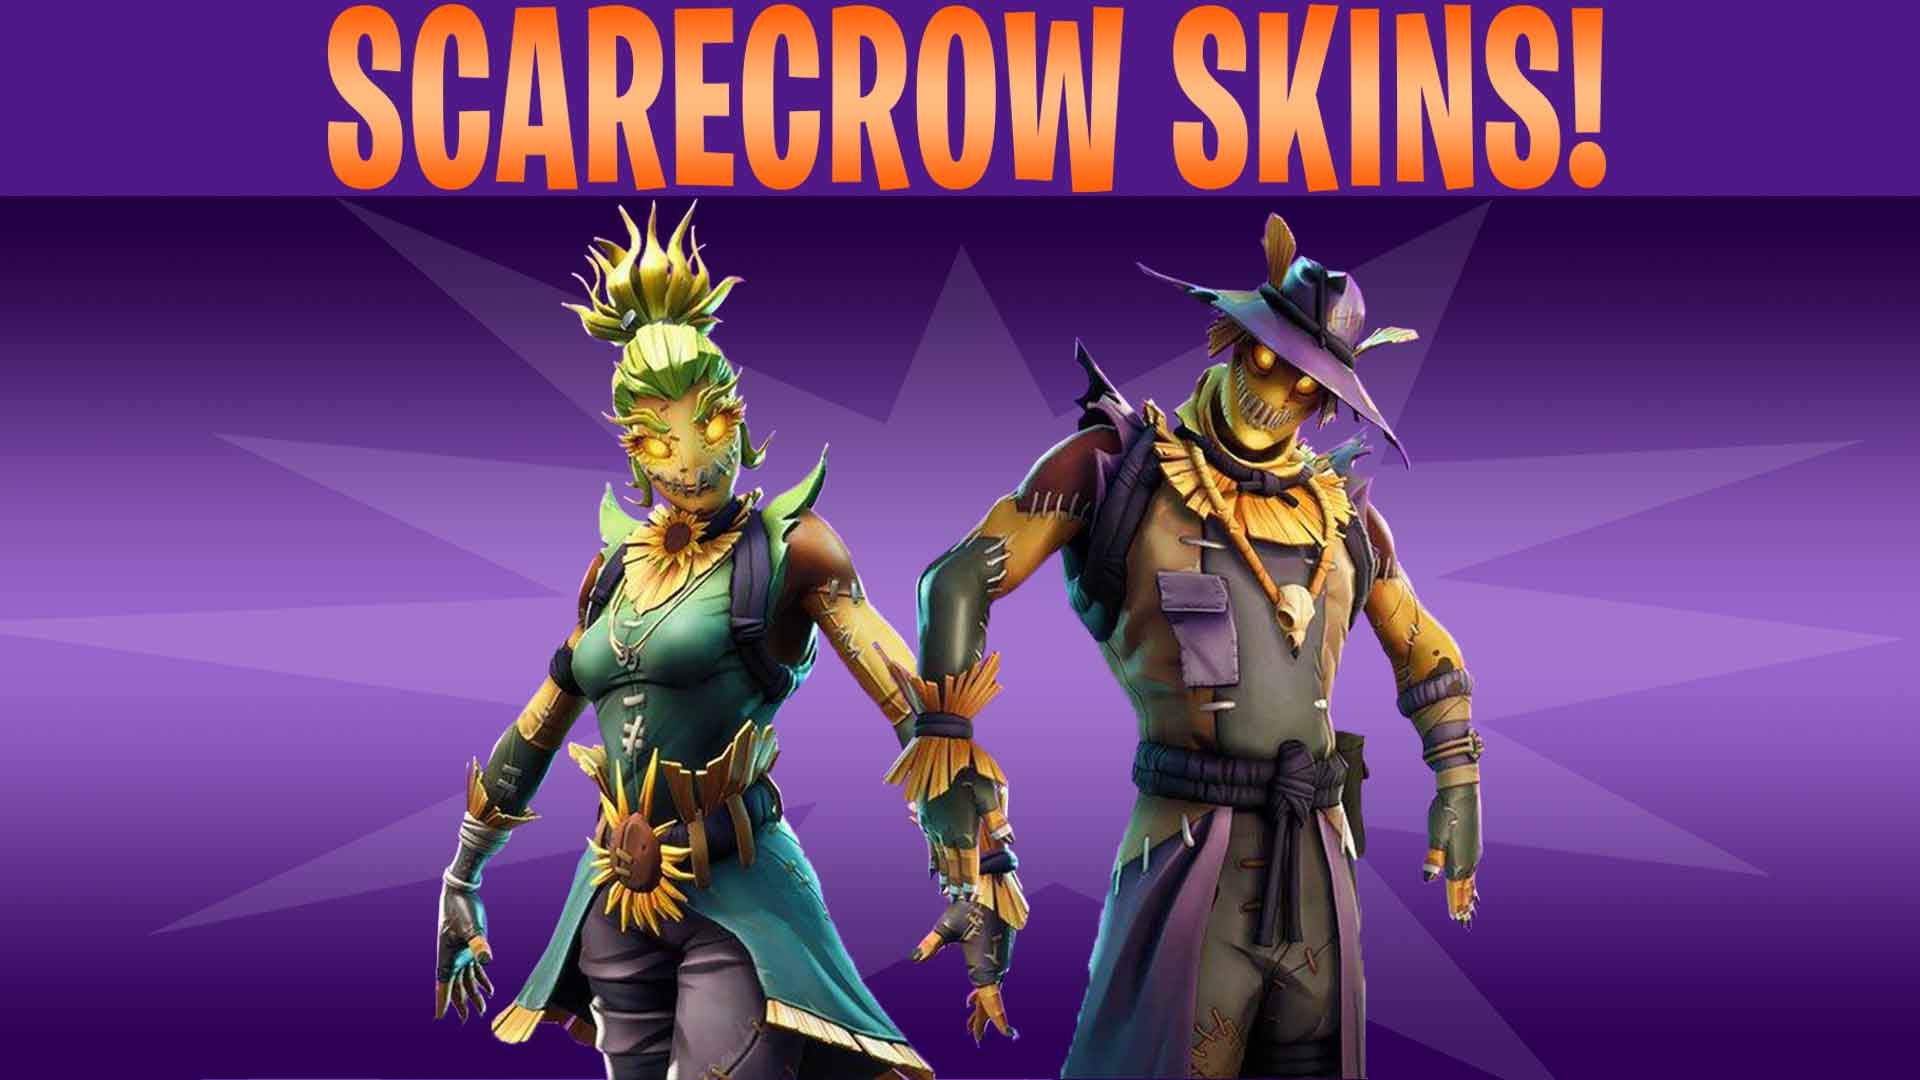 first halloween skins arrive, gliders and more! - fortnite news